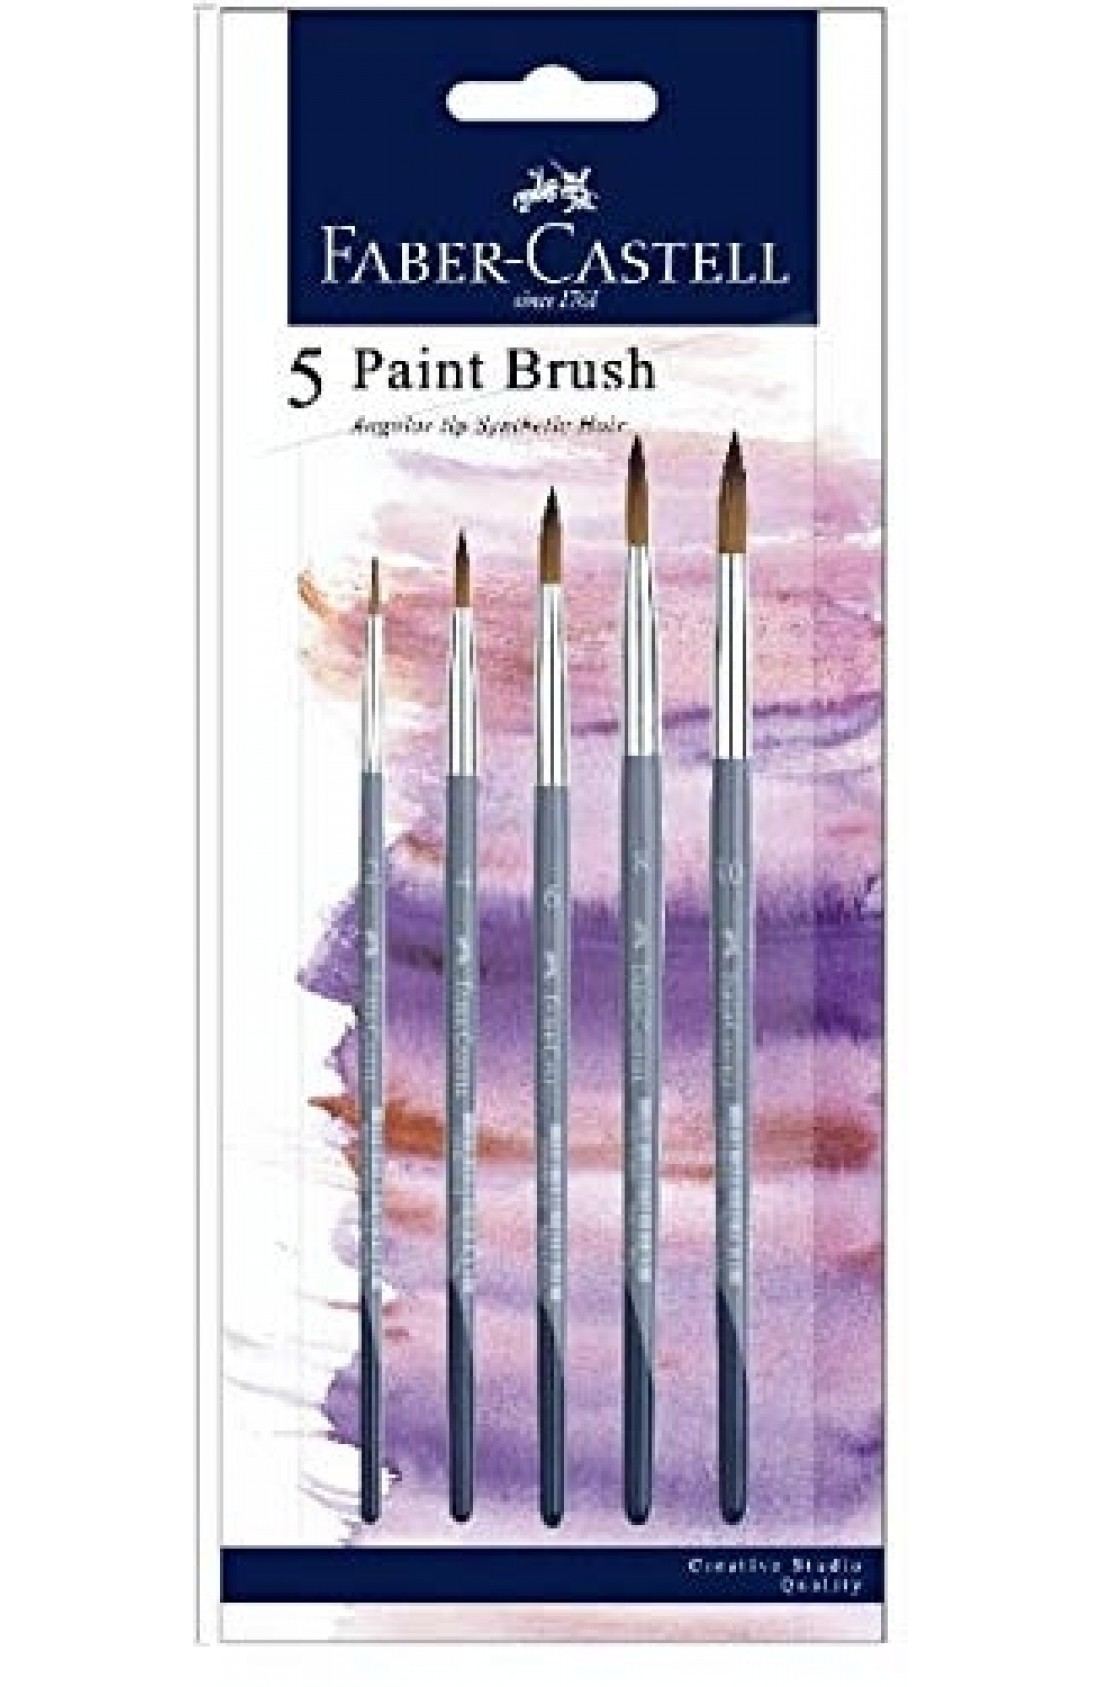 Faber-Castell Flat Synthetic Round Brushes (6,8,12,14,16)